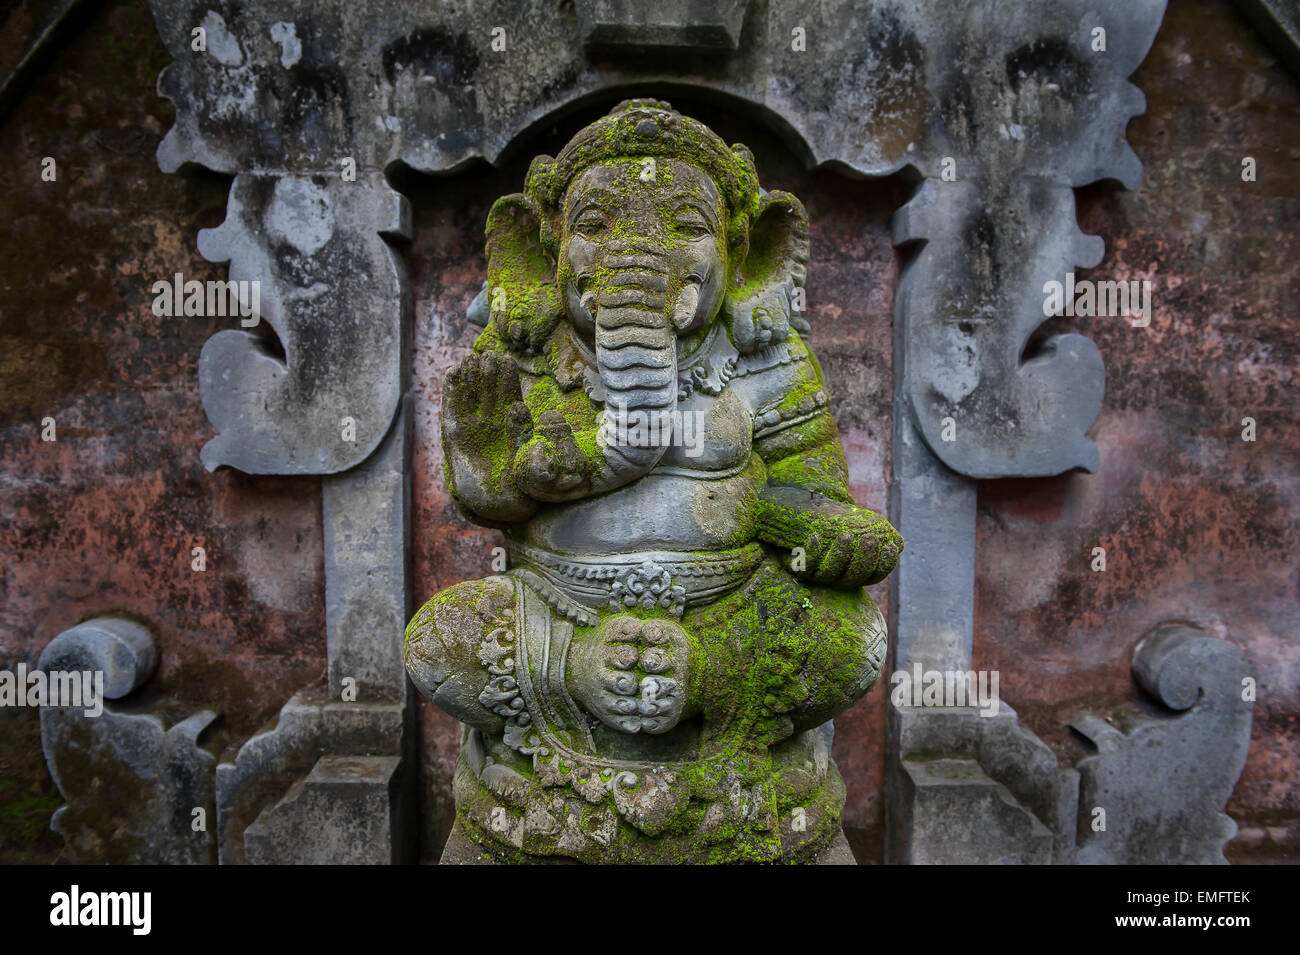 Sculpture of Ganesha covered with mold and moss. Traditional Hindu culture. Divine spirituality and total humidity - Stock Image